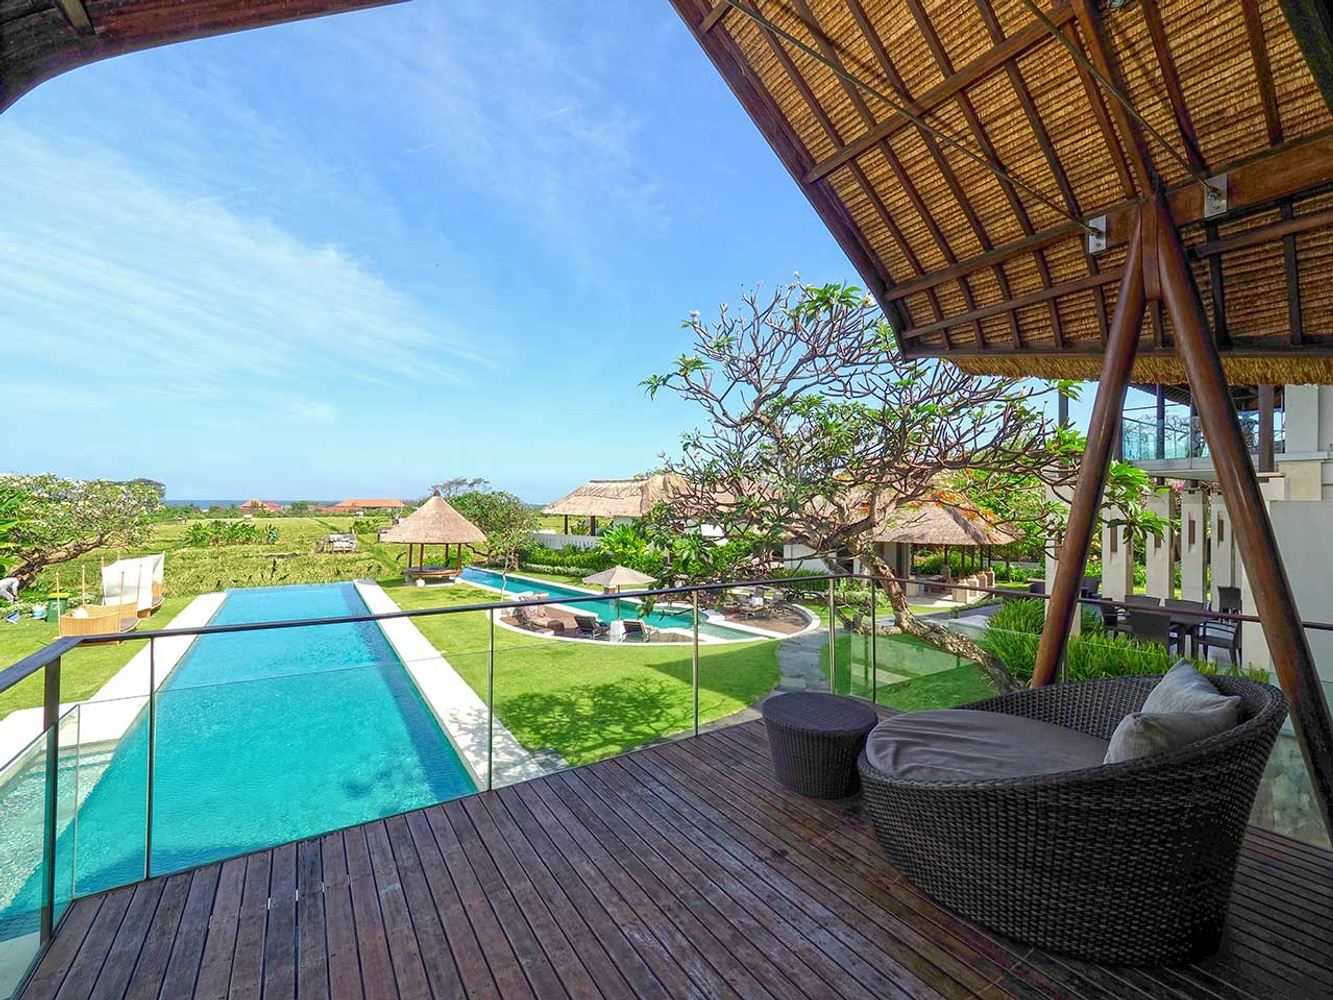 Bali - Sanur Awesome 7 Days Paradise Fitness Escape